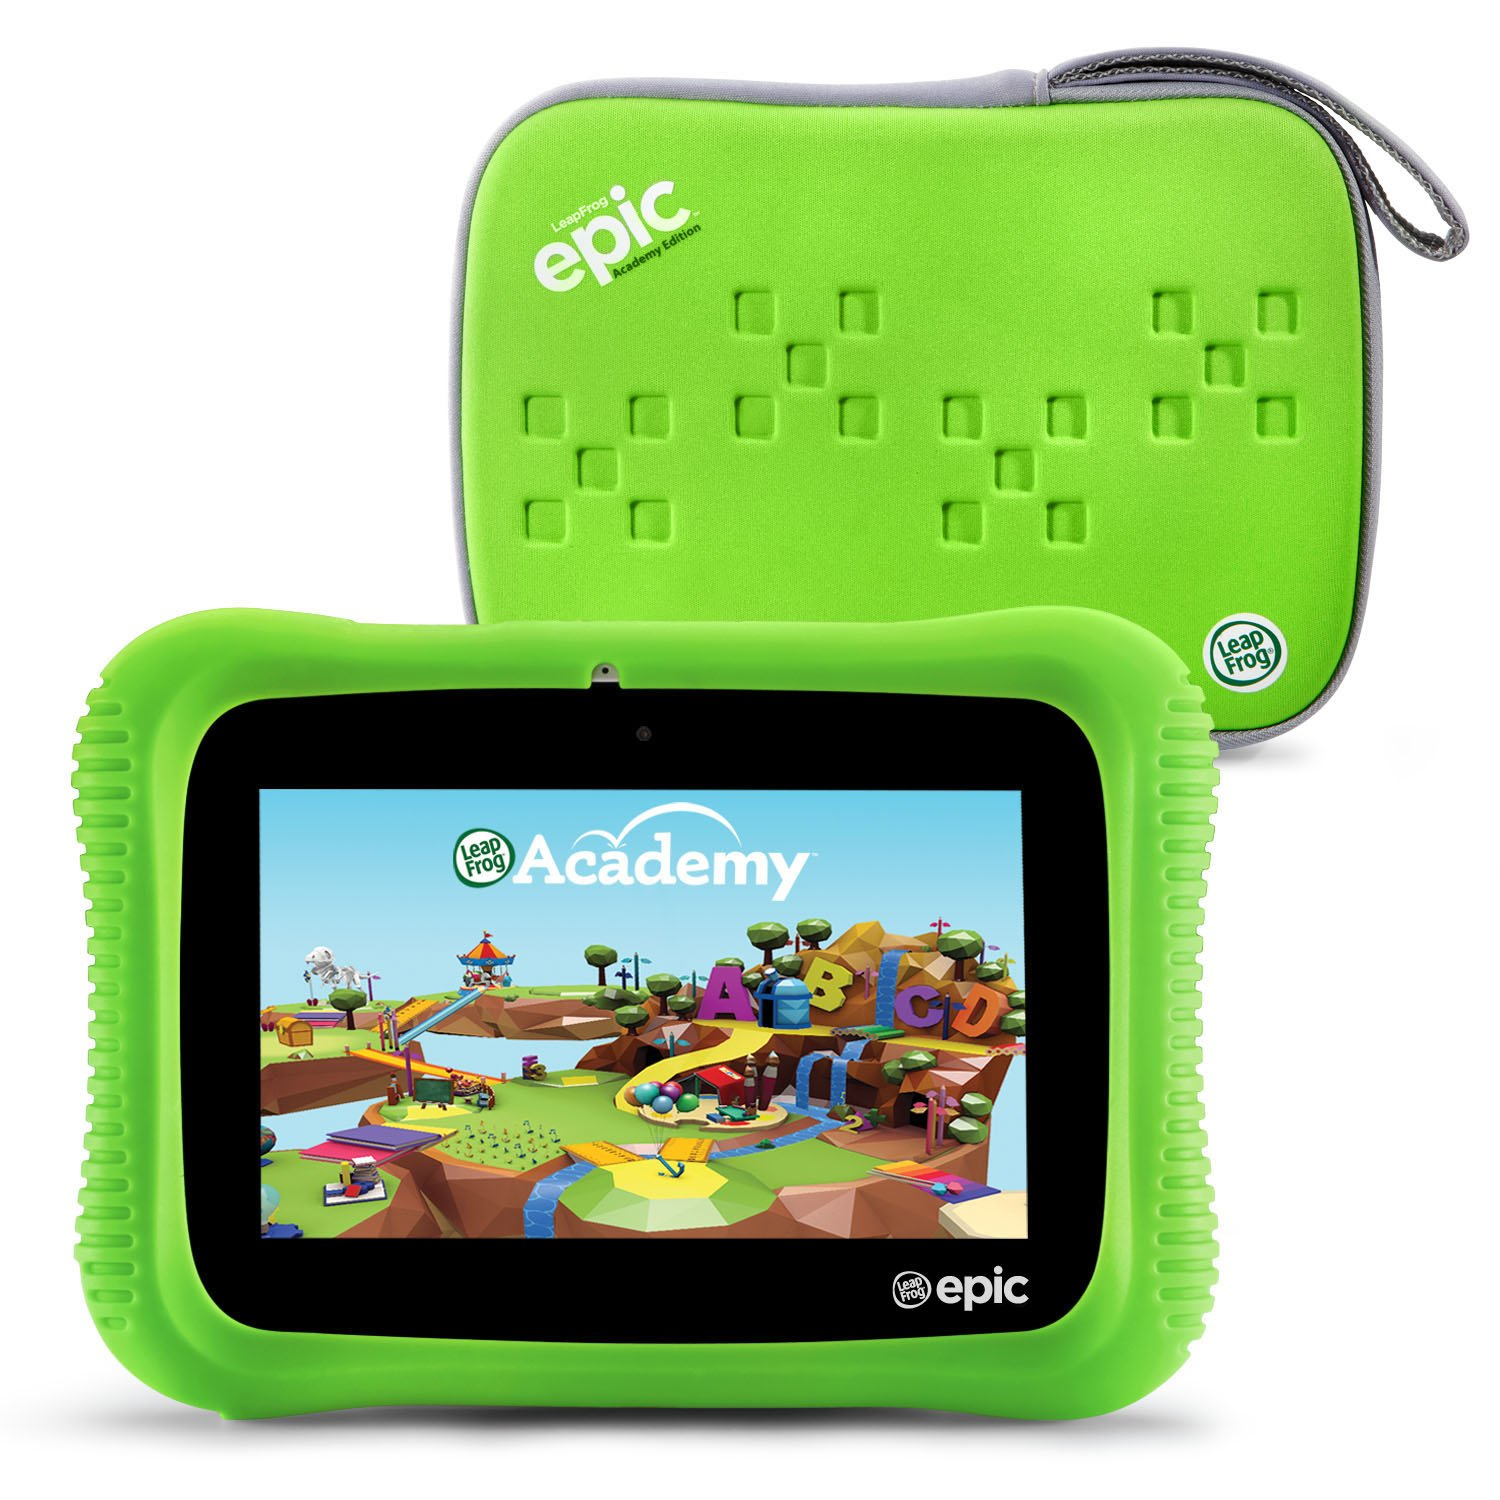 LeapFrog Epic Academy Edition 7'' Android 2.0 Based Kids Tablet 16GB with Carrying Case, Green